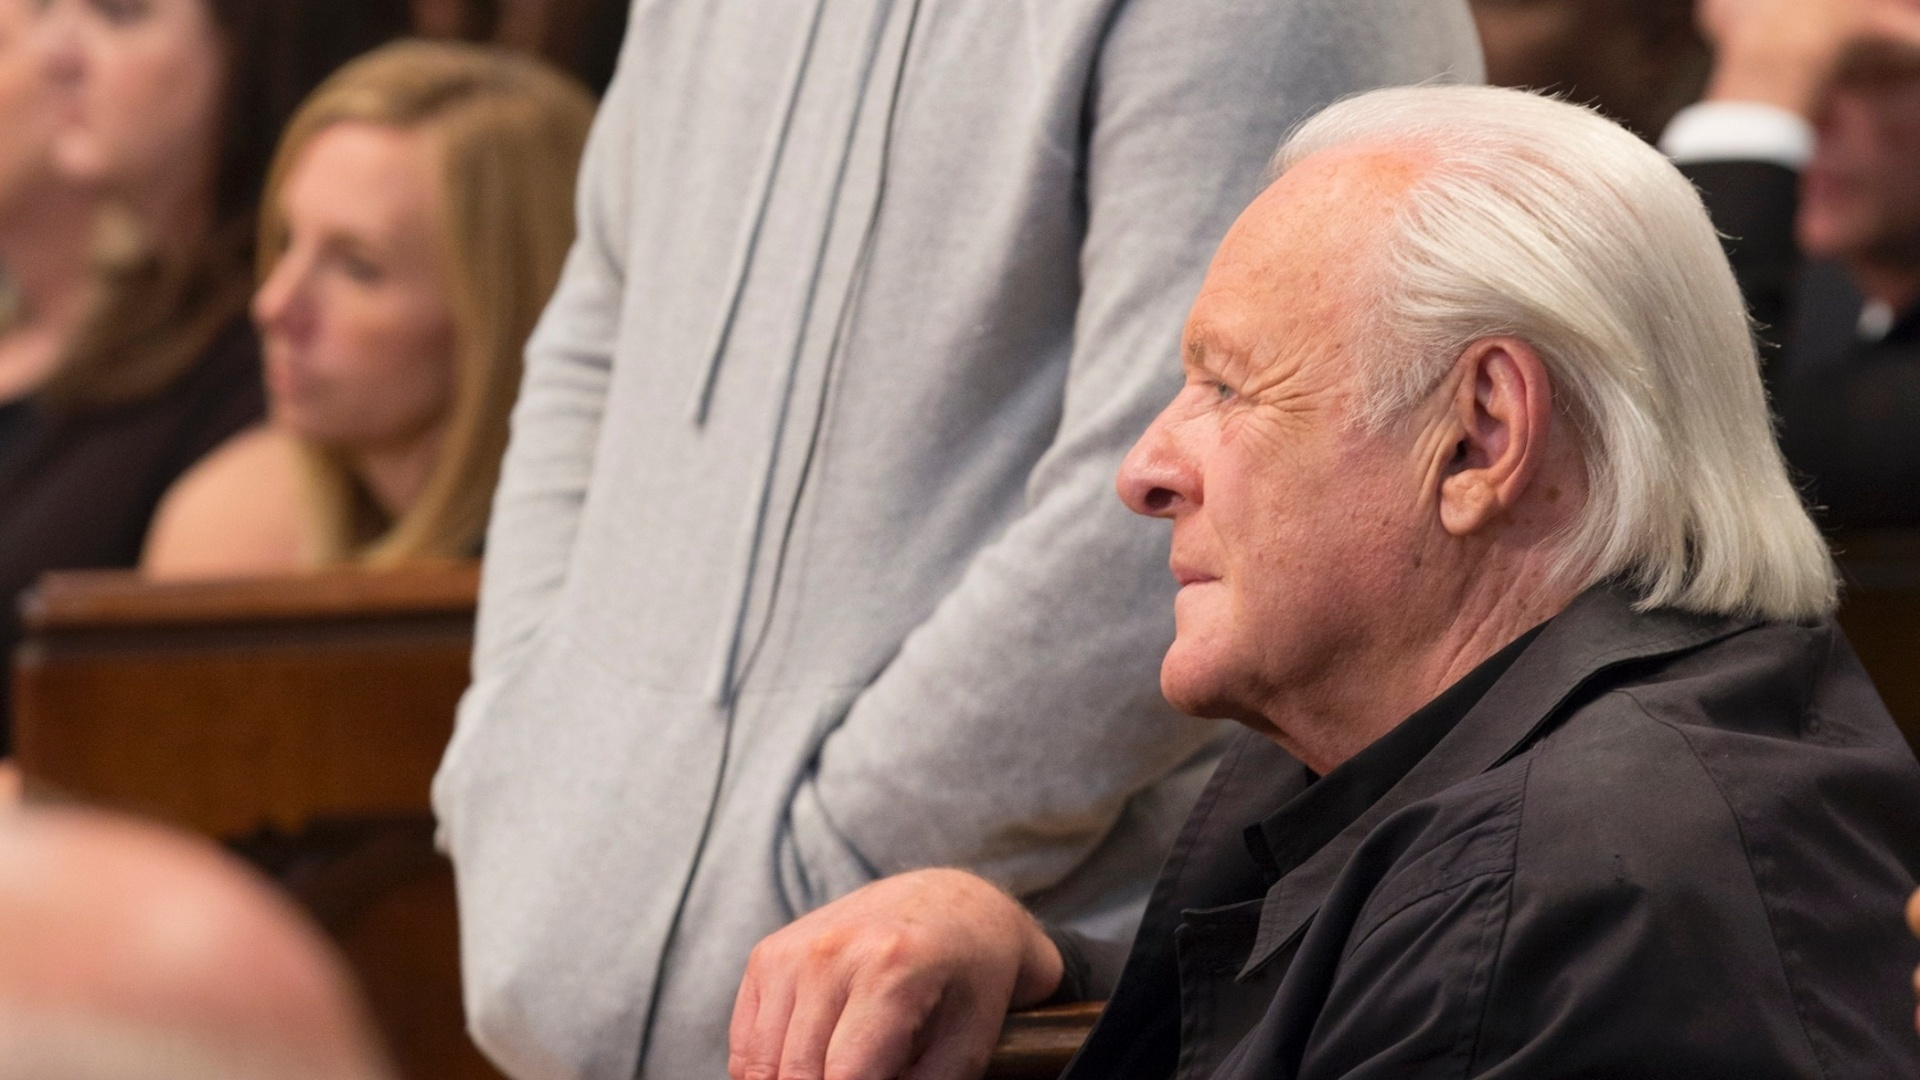 Afonso Poyart conversa com Anthony Hopkins no set de filmagens de